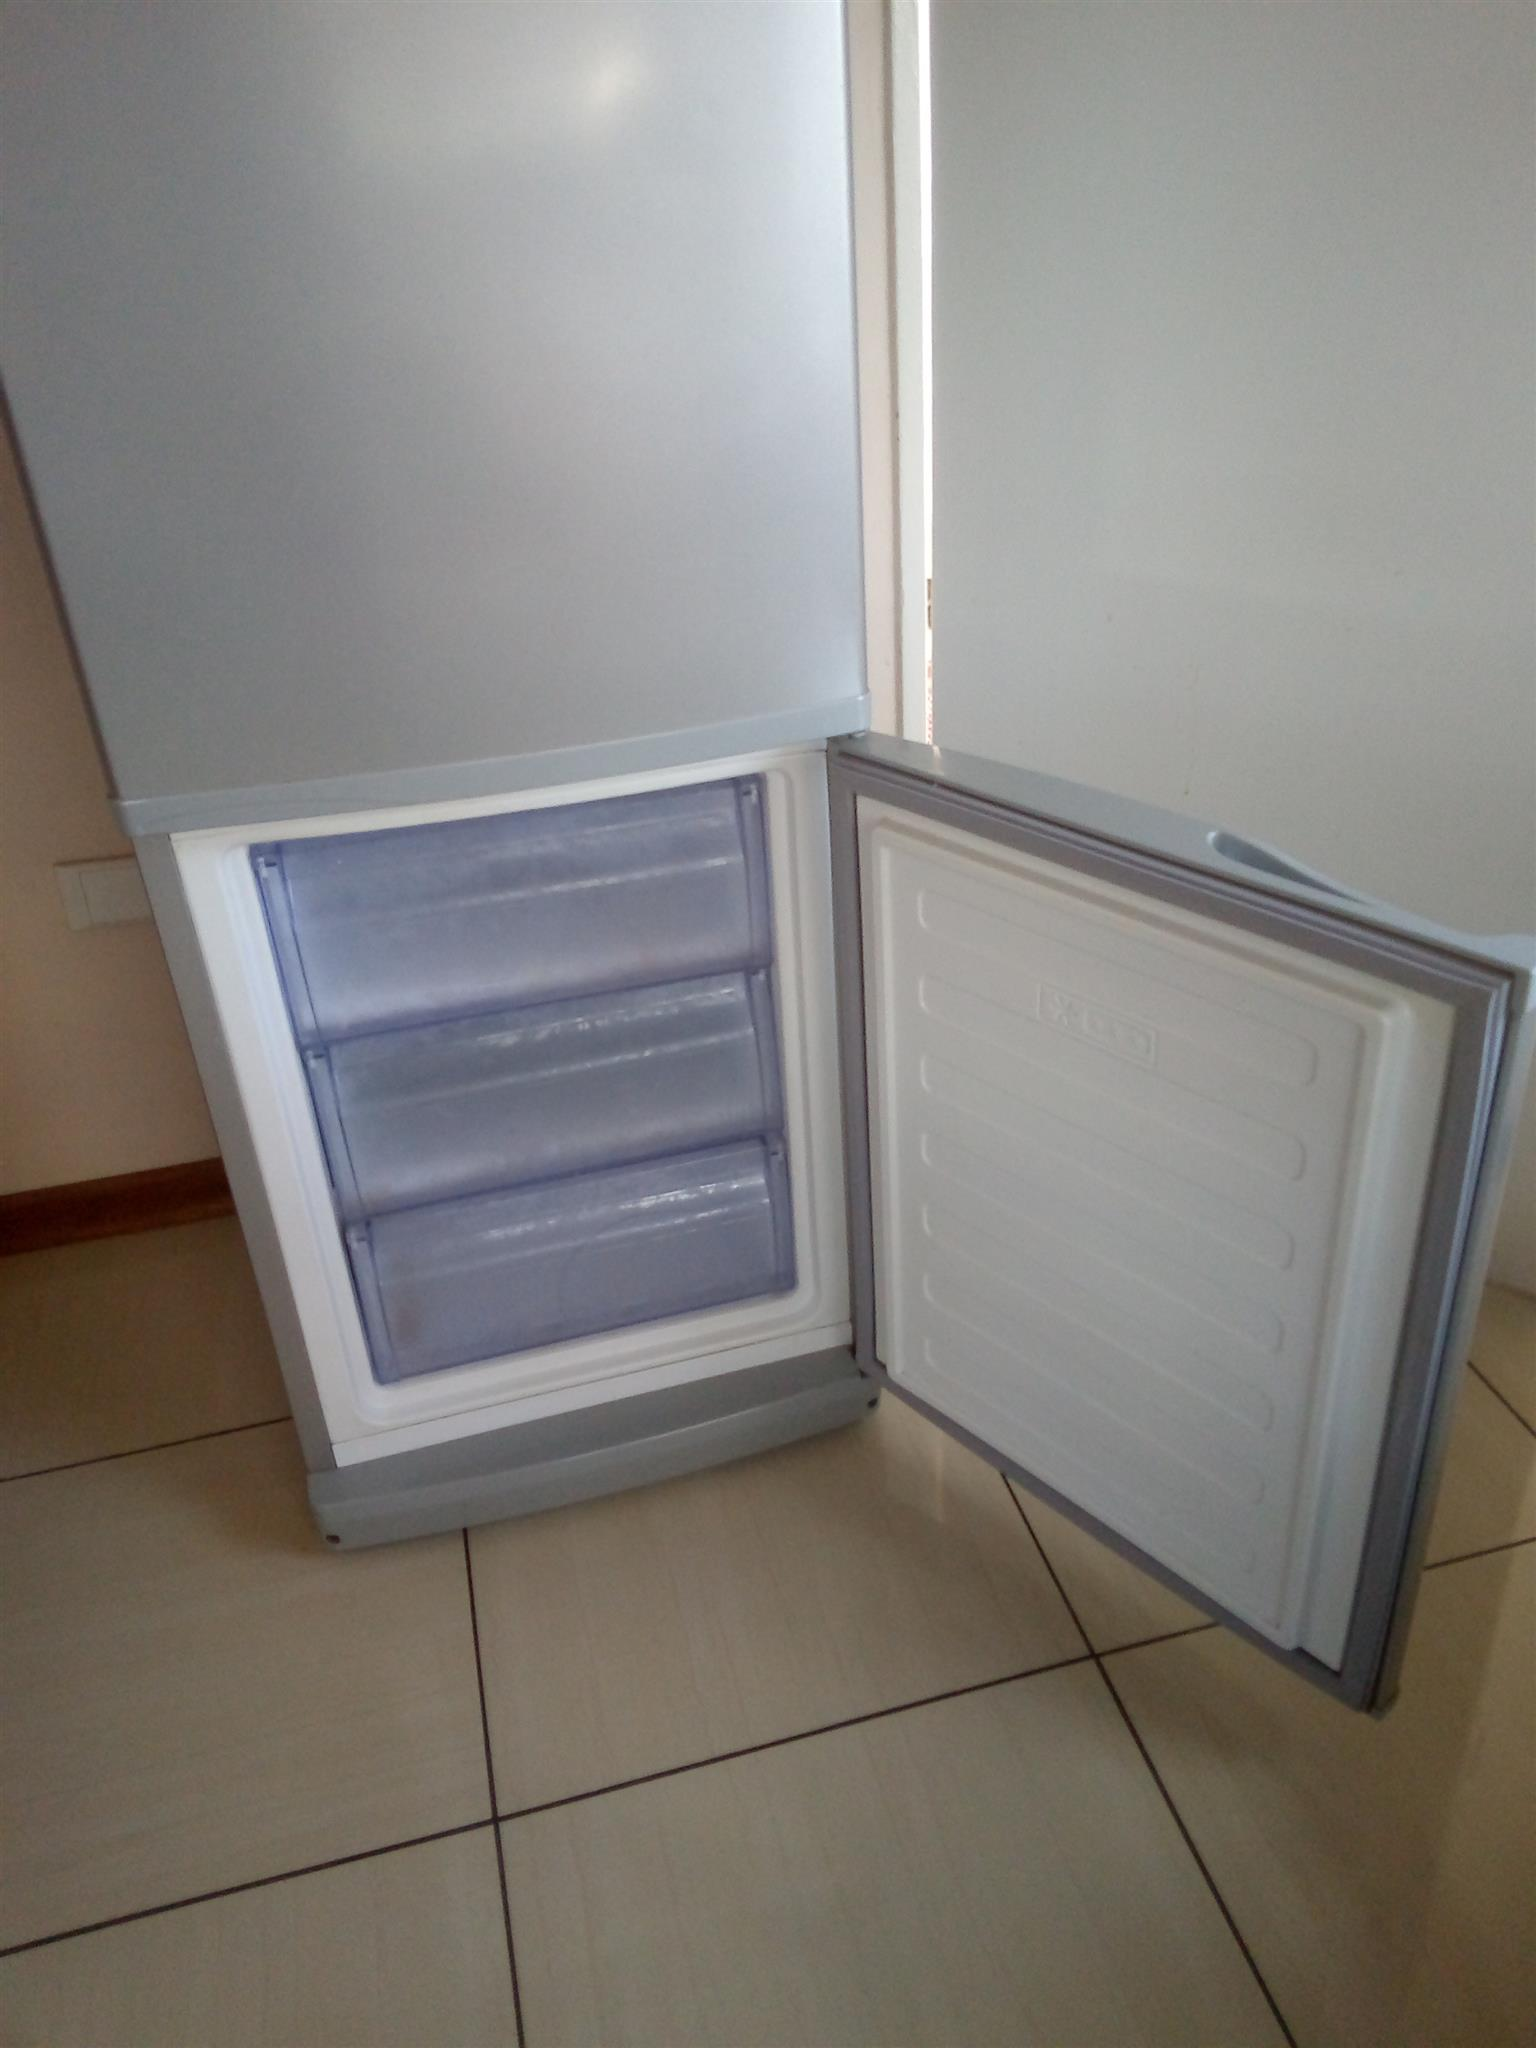 Defy fridge for sale R2700 negotiable.